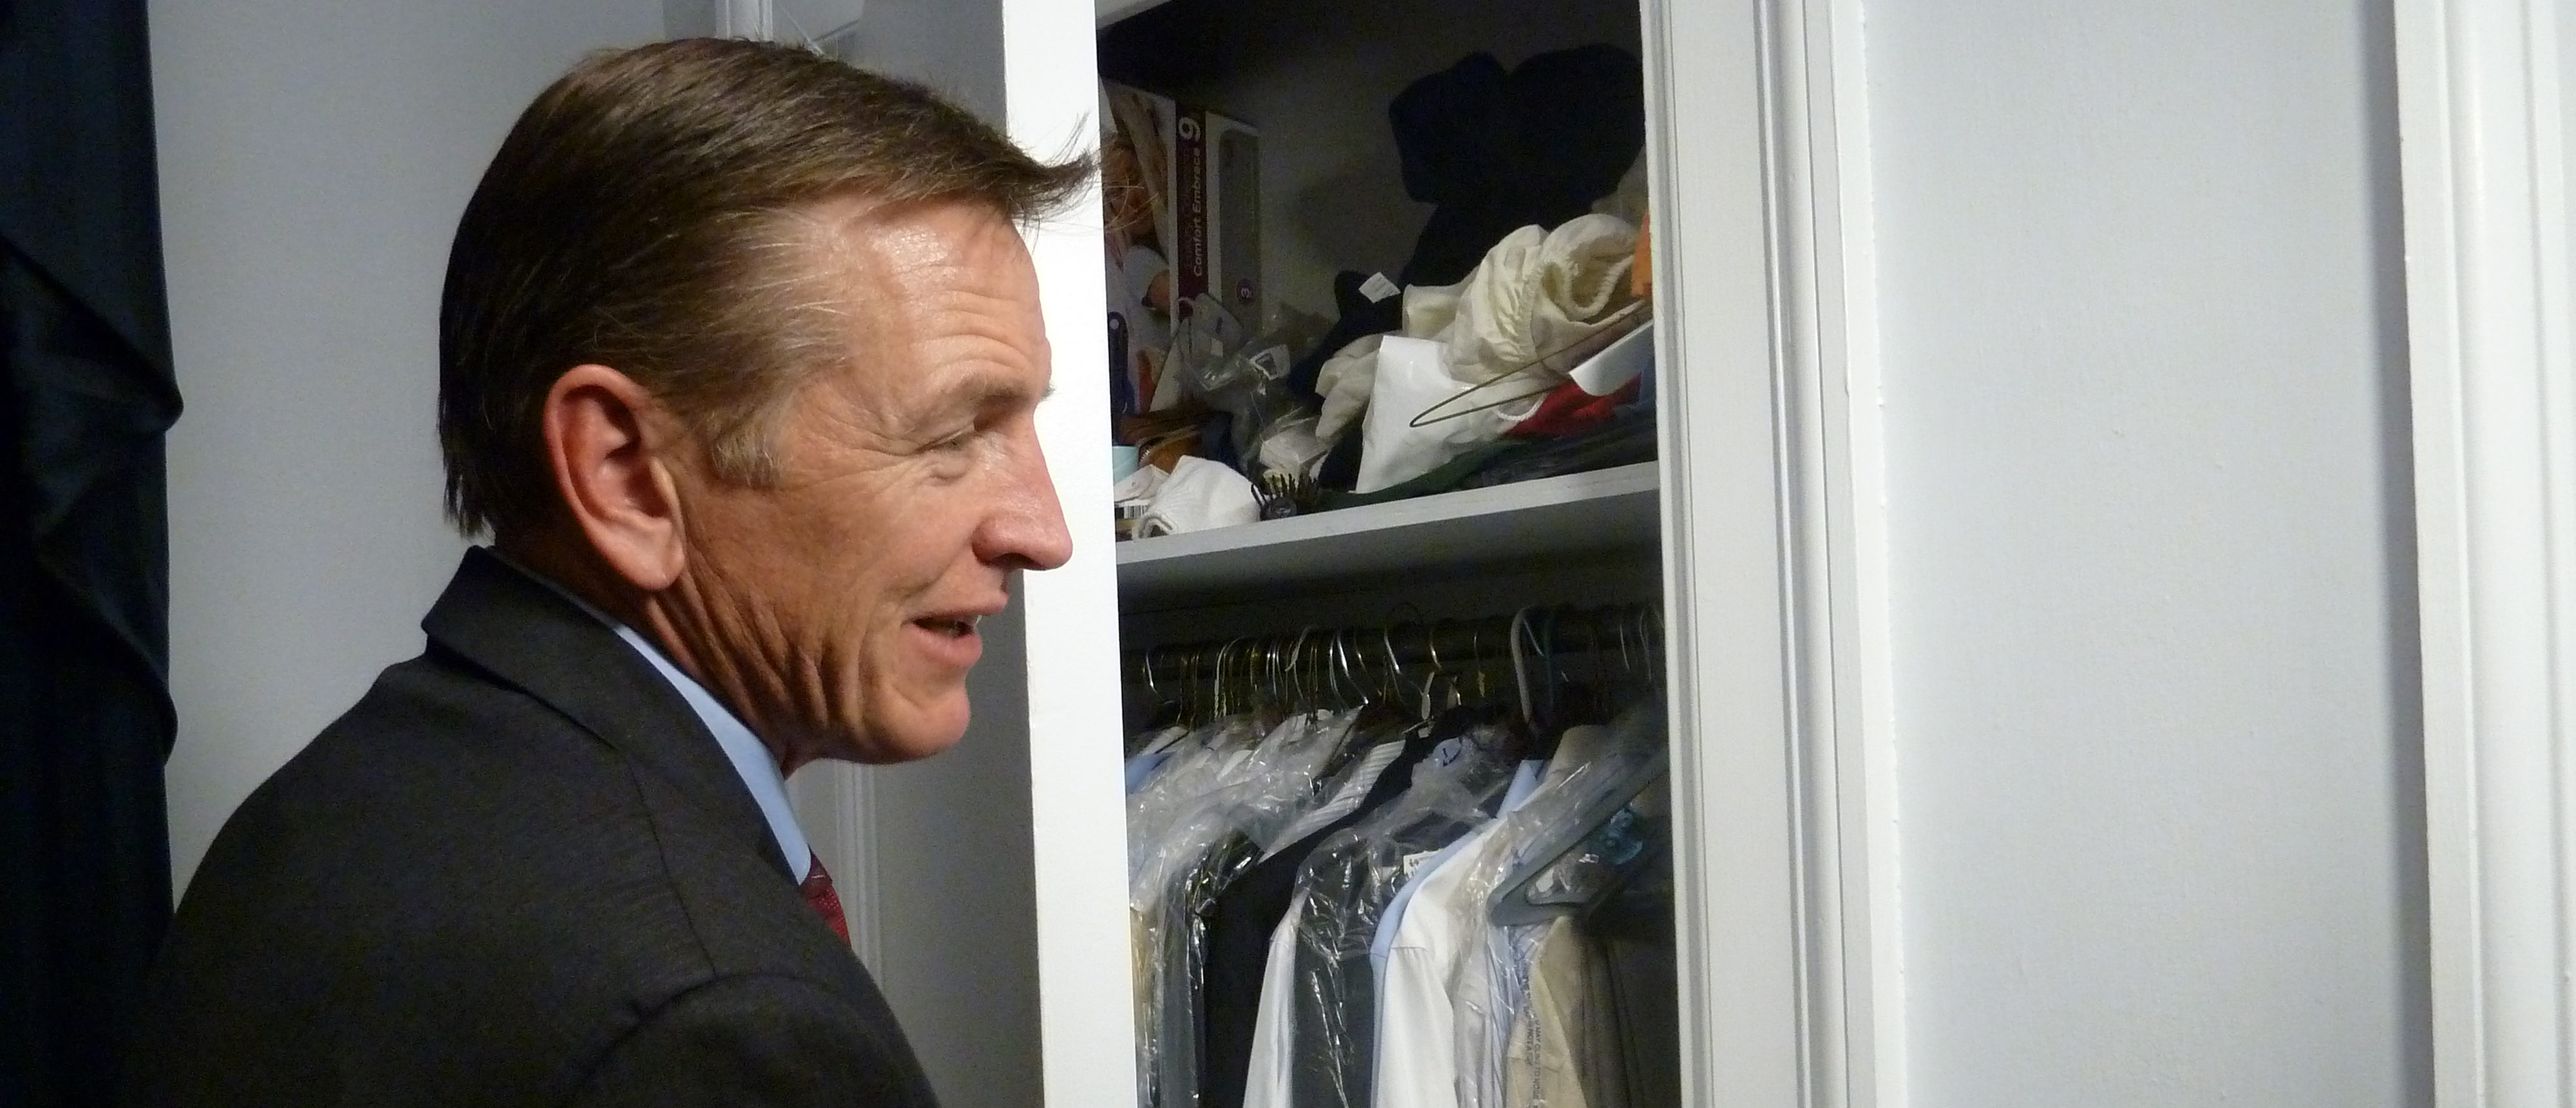 """US Congressman Paul Gosar, Republican of Arizona, opens his closet on December 12, 2012, at the Cannon House Office Building. """"Campers Capitol"""" is a group of 50, mostly men and Republican US lawmakers that work and live in their offices. They are heirs to a tradition that was established in the mid 90s with the blessing of Newt Gingrich, then president of the House of Representatives. """"Waking up every morning in the office helps me remember that my home is not here but there, in my constituency,"""" says Walberg. AFP PHOTO/Raphaelle Picard"""